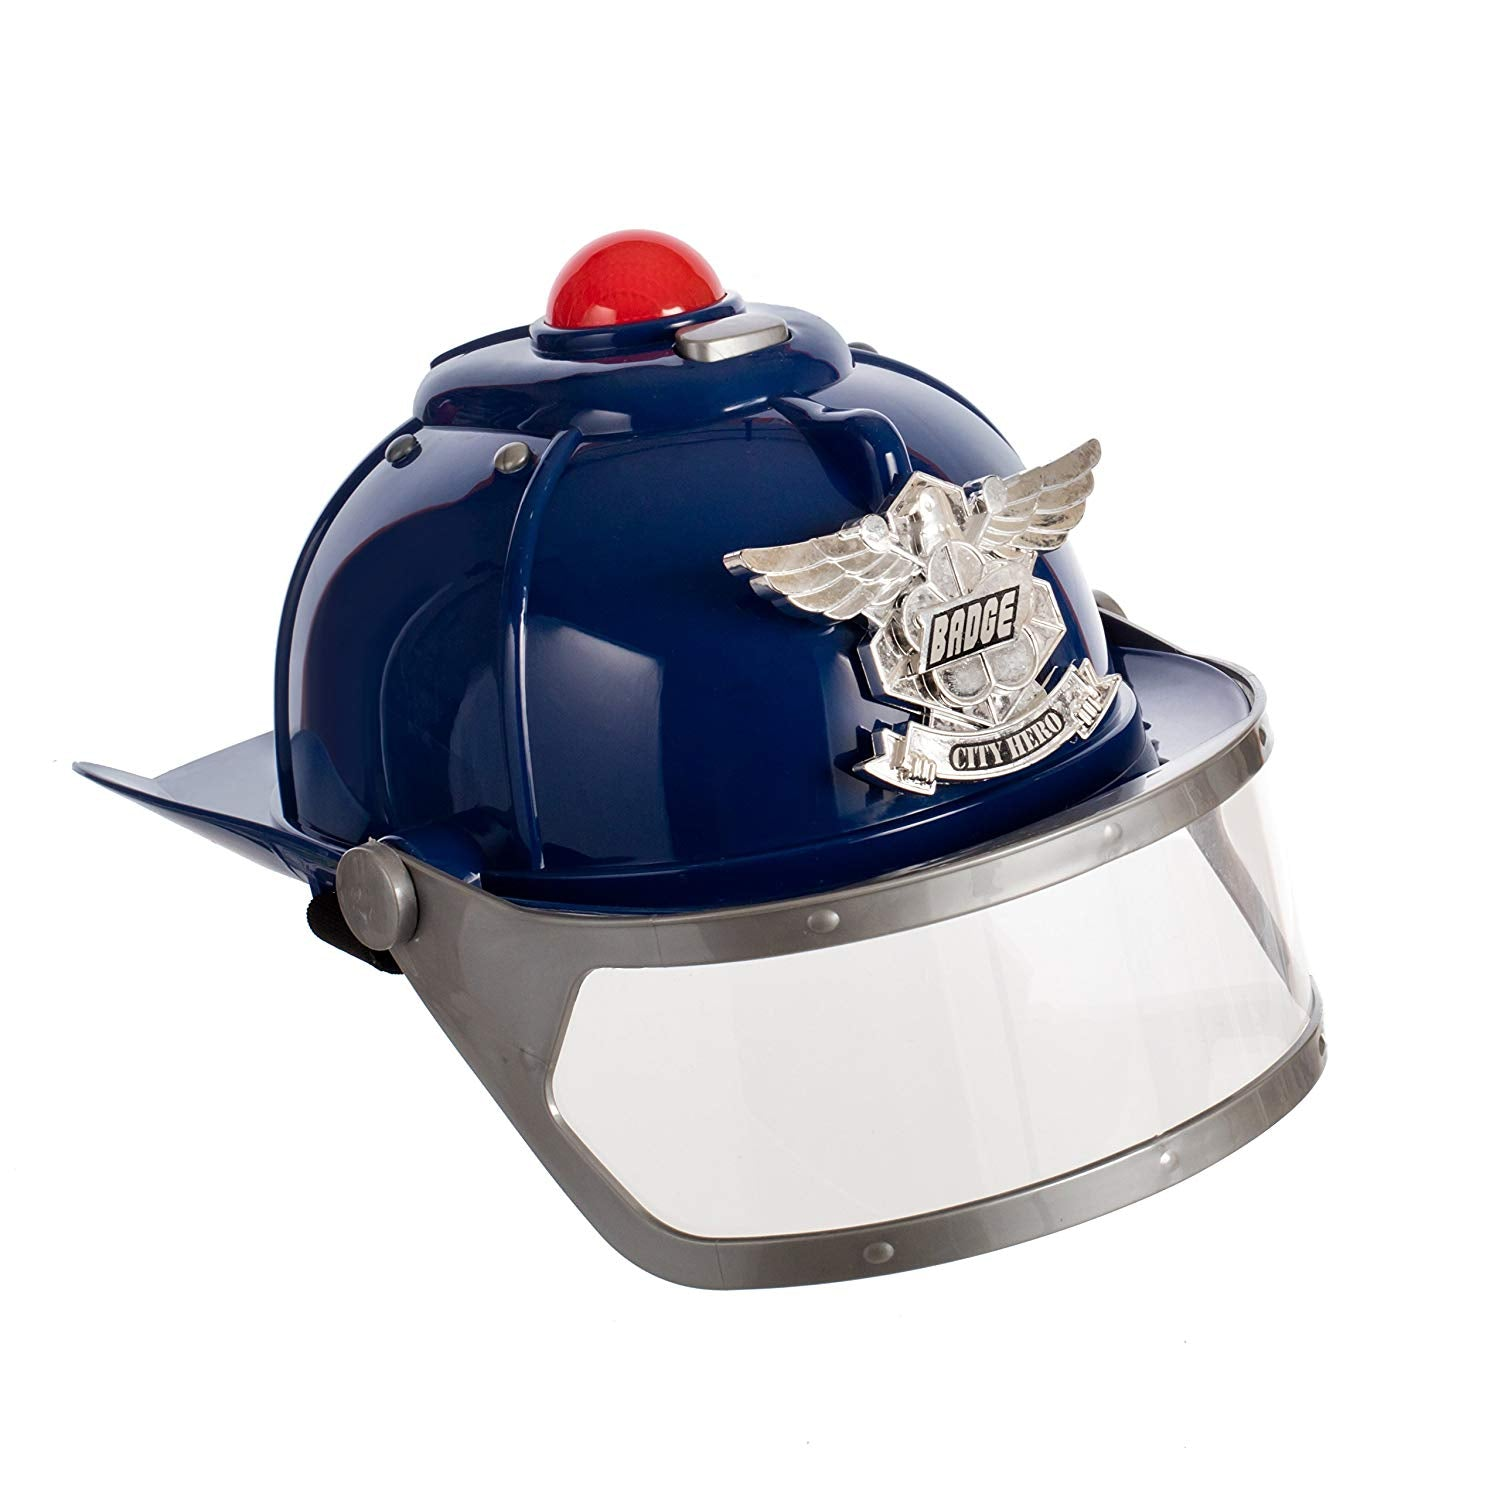 The city of heroes Police Helmet with lights and sirens